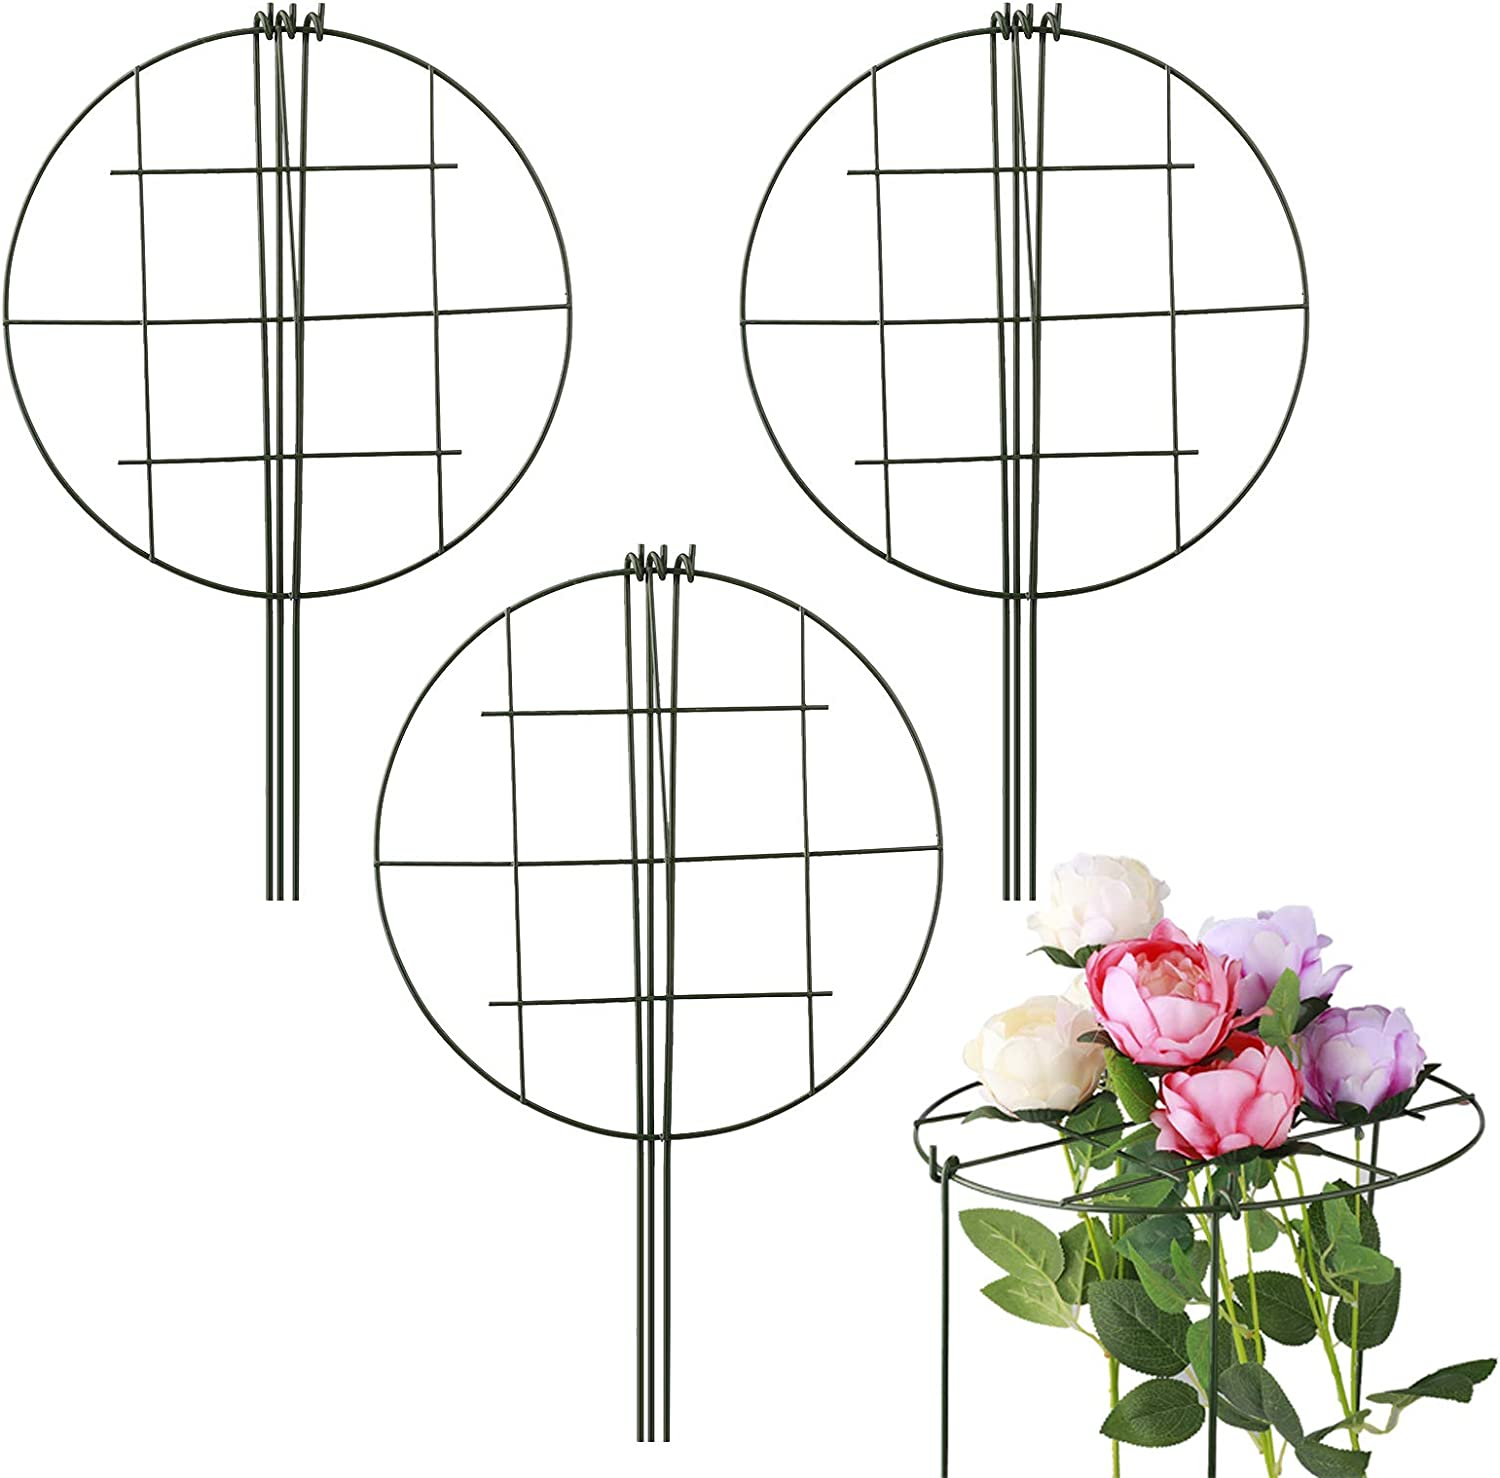 æ— Round Plant Support, Grow Through Grid Flower Plant Support Cage Iron Plant Support Stakes Flower Growing Support Rings